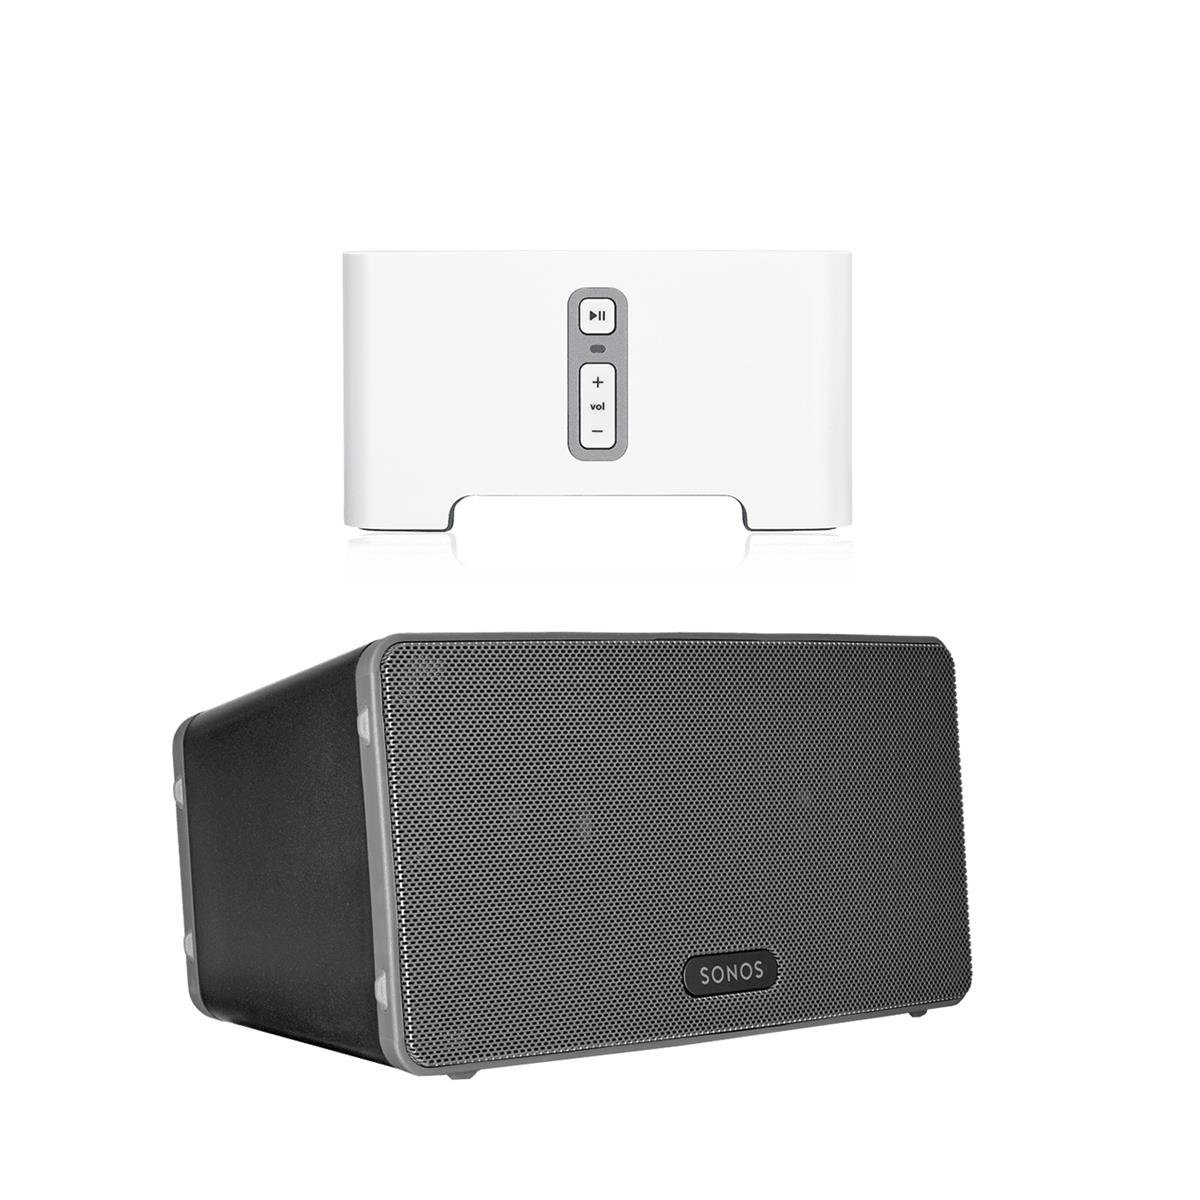 Sonos CONNECT Wireless Receiver for Streaming Music Bundle & Sonos PLAY:3 Wireless Speaker, Single - Black by Sonos